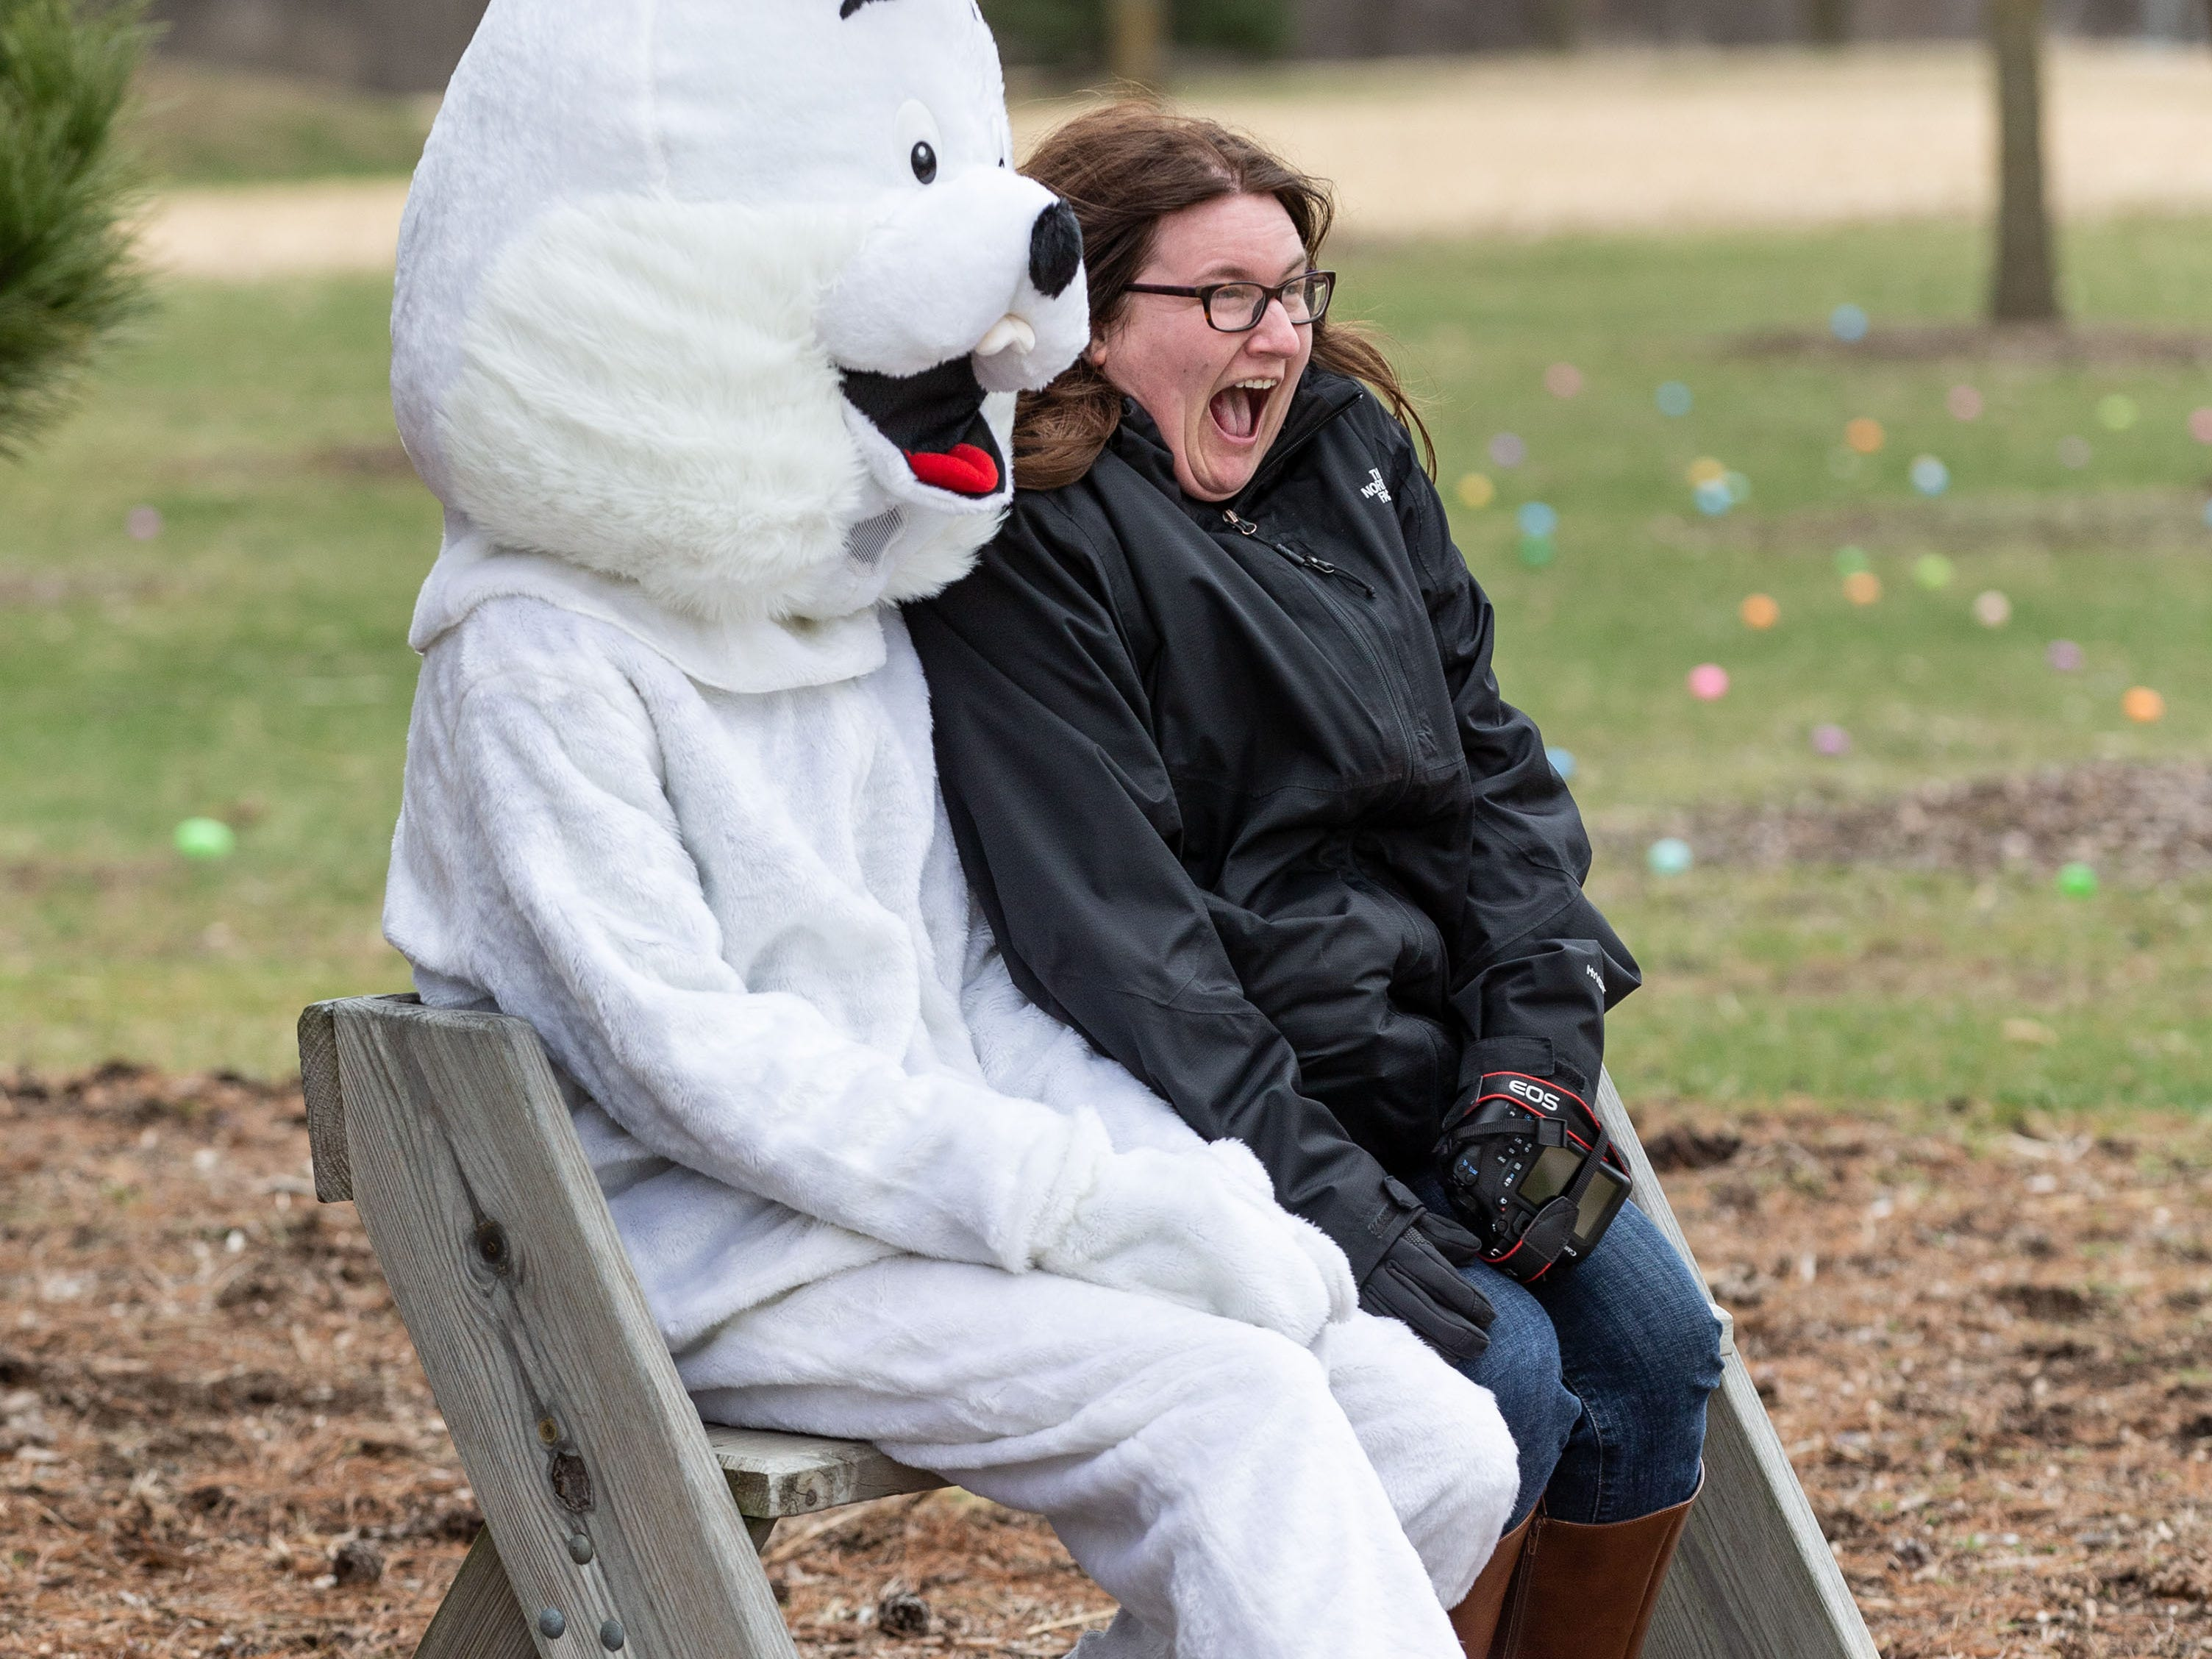 Amber Tyler of DeForest recreates a childhood photo with the Easter Bunny during the annual Easter Extravaganza egg hunt in Lisbon Community Park on Saturday, April 13, 2019. Sponsored by the Lisbon Park Department, the hunt features treats from area businesses and organizations, pictures with the Easter Bunny, local emergency response vehicles and more.